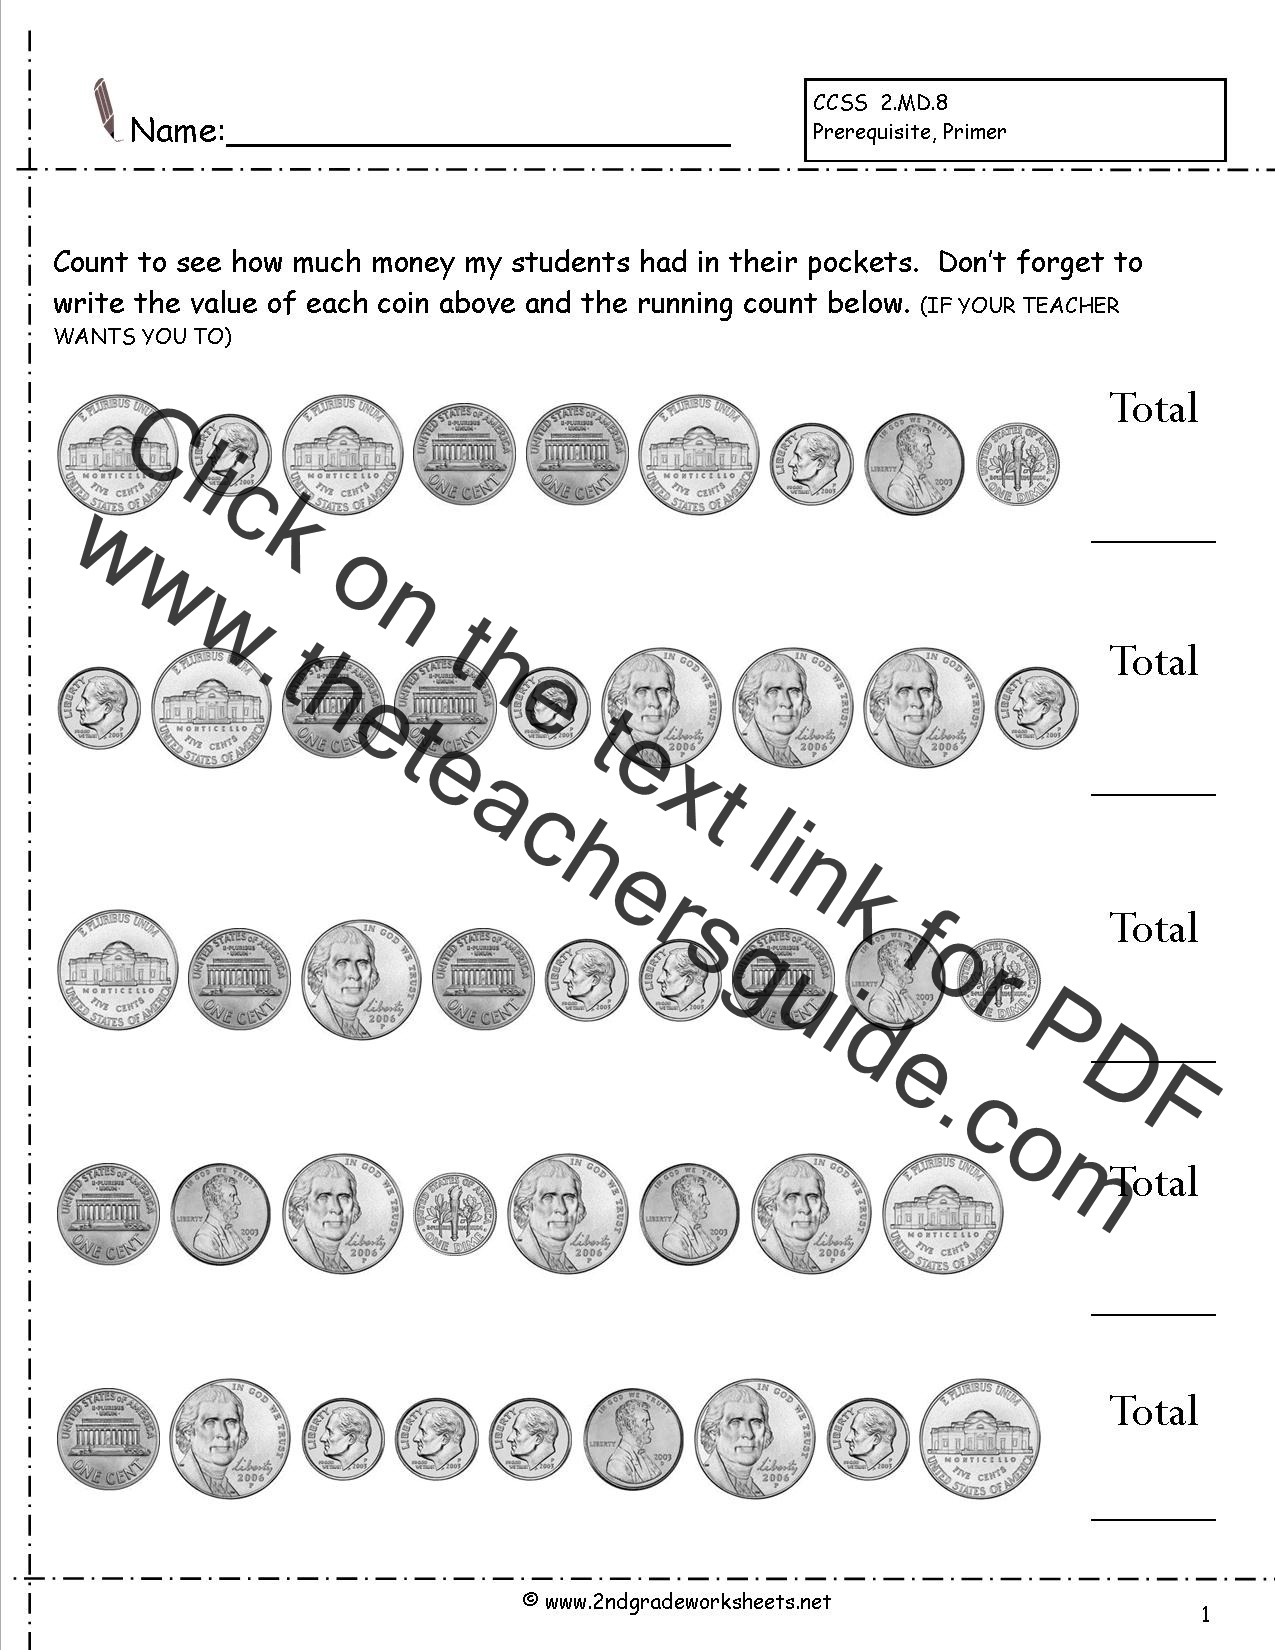 Worksheet 2nd Grade Counting Money counting coins and money worksheets printouts worksheet